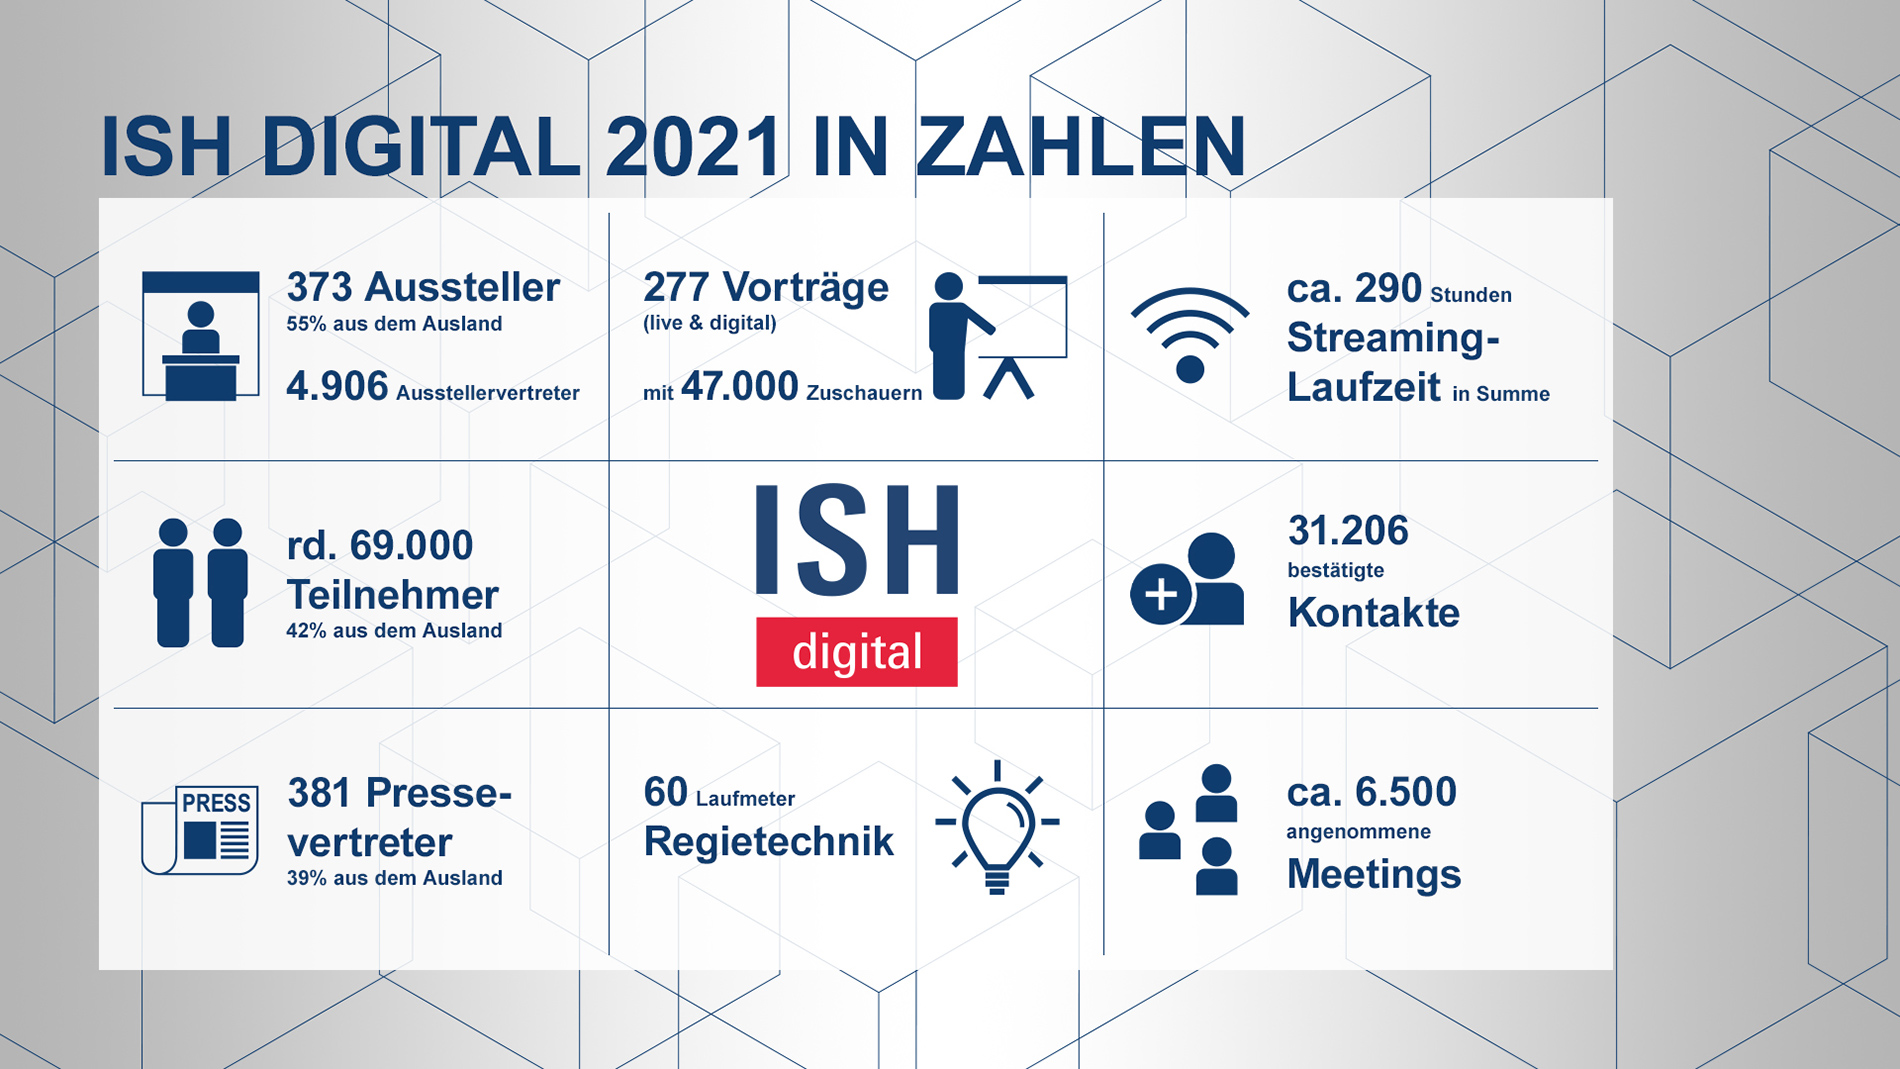 ISH Digital 2021 in Zahlen